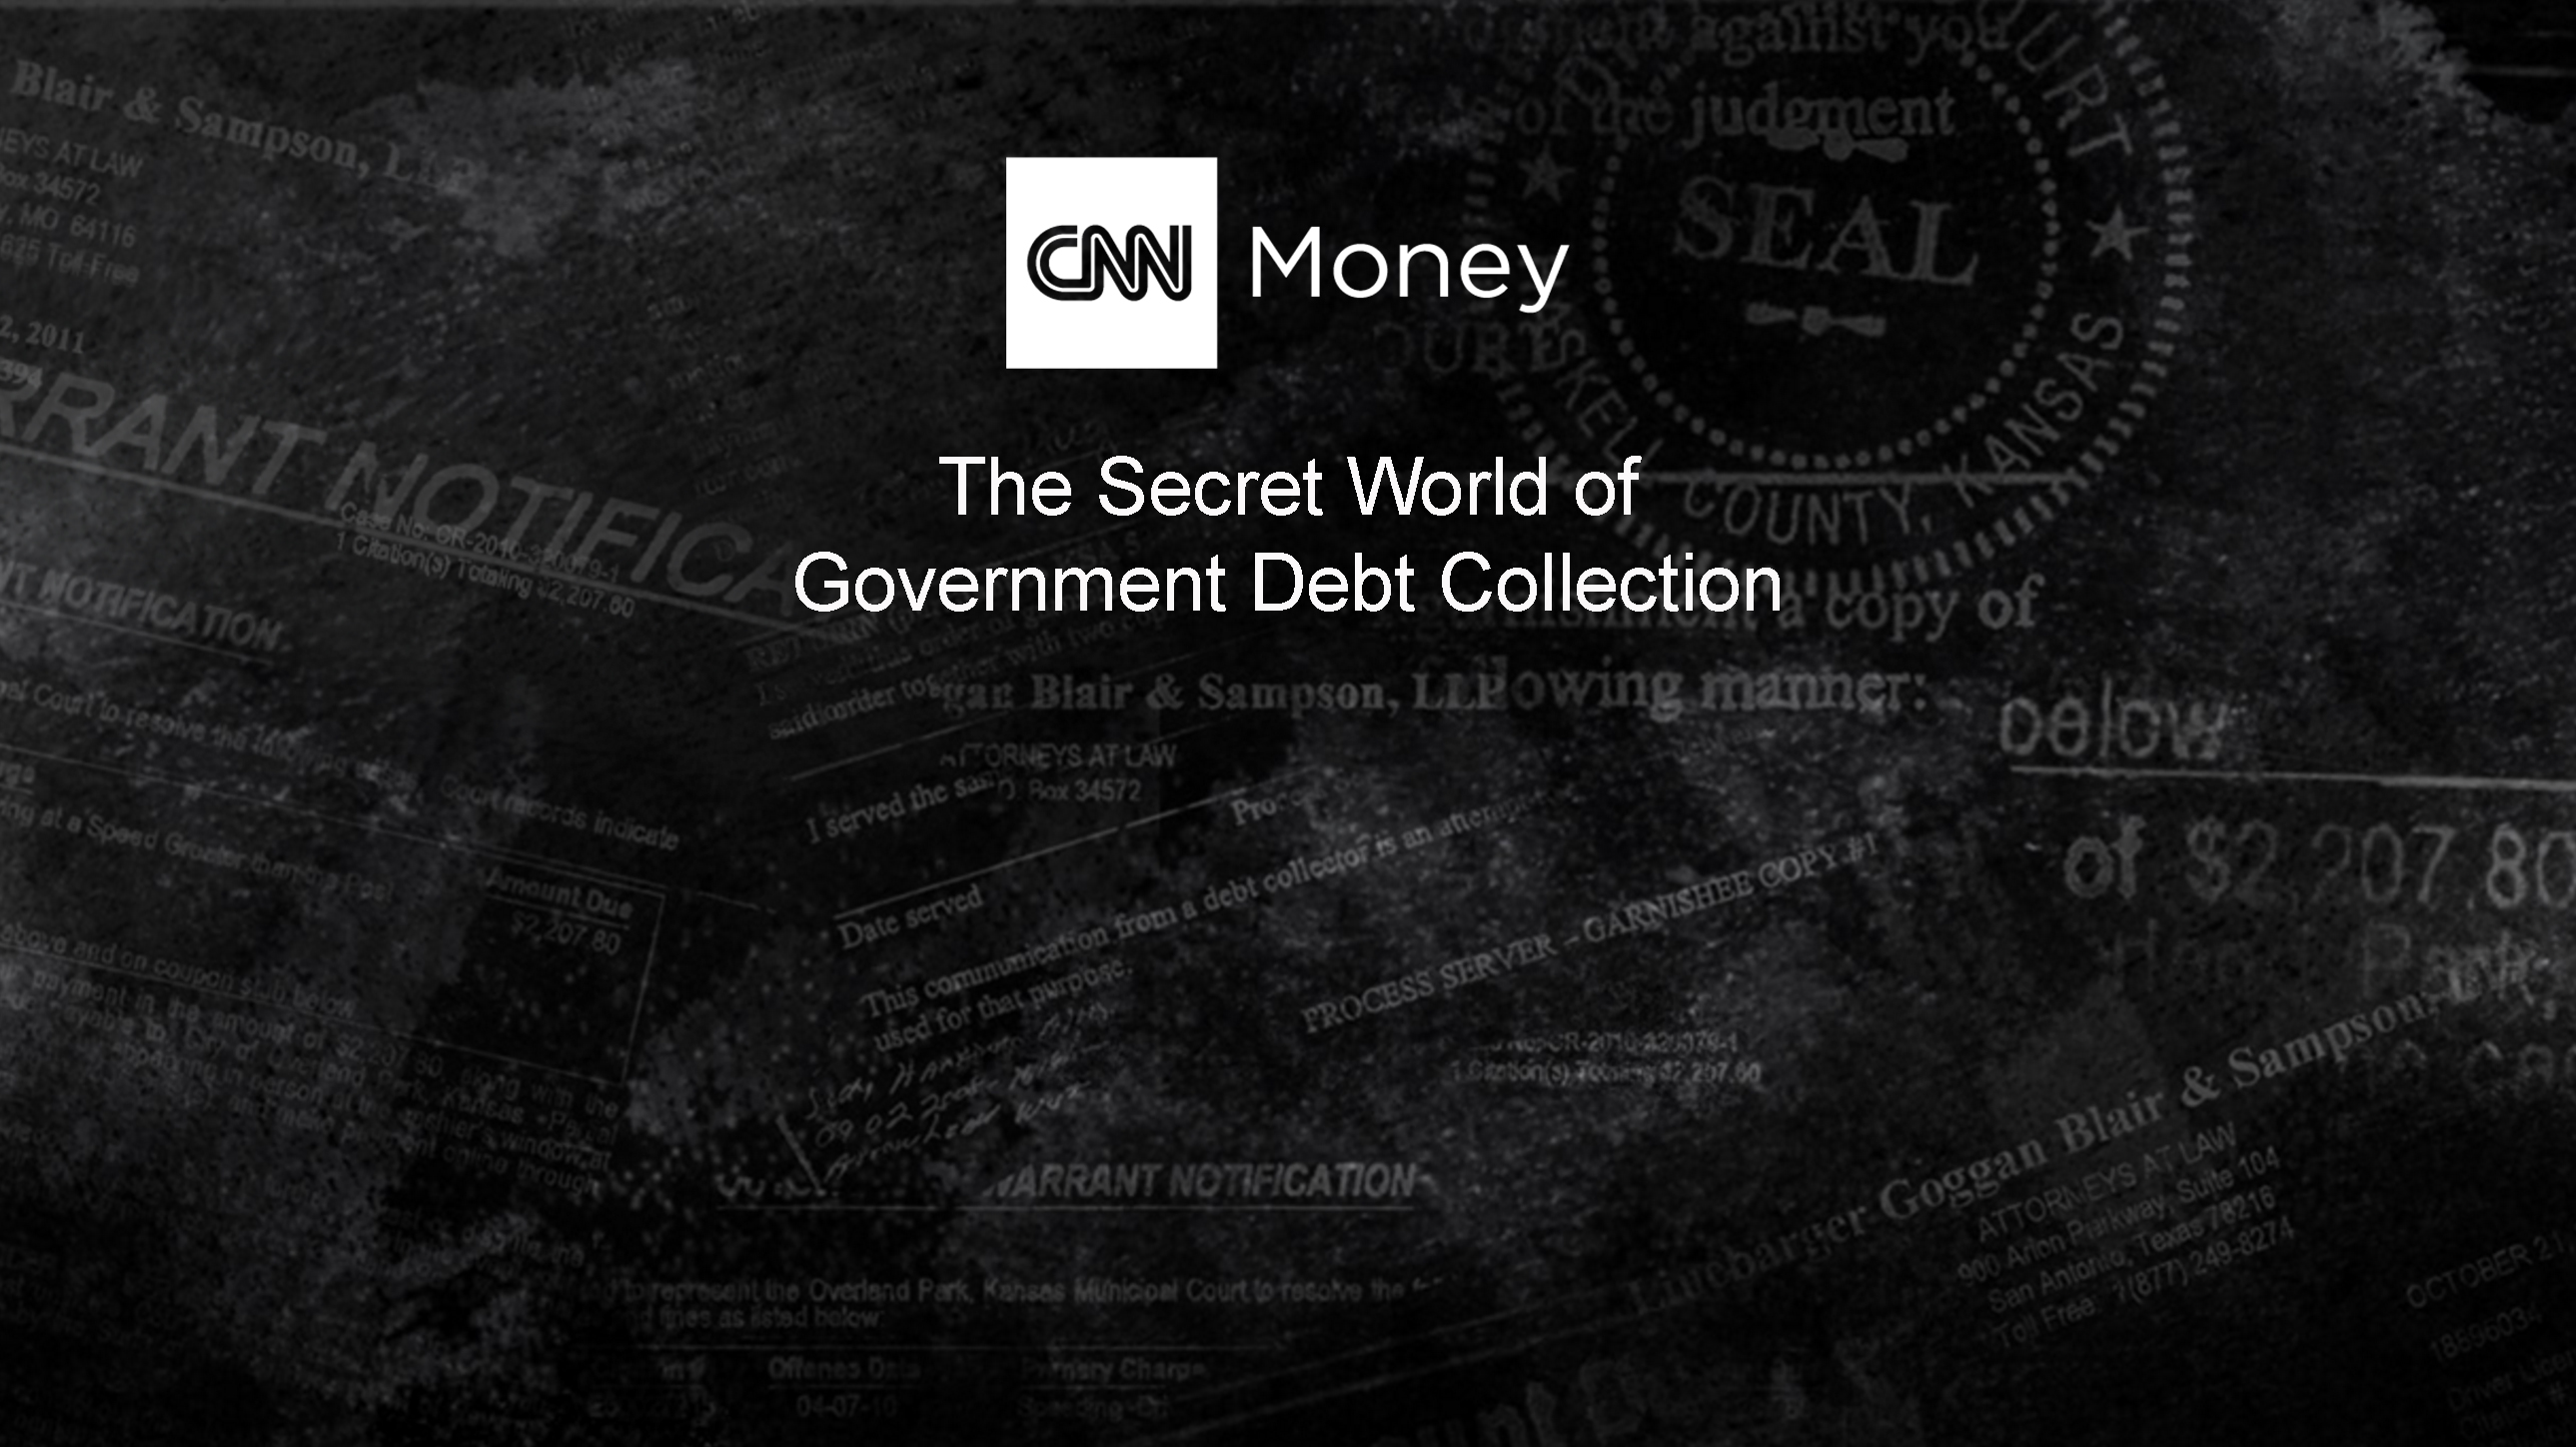 CNNMoney Exclusive Investigation: The secret world of government debt collection